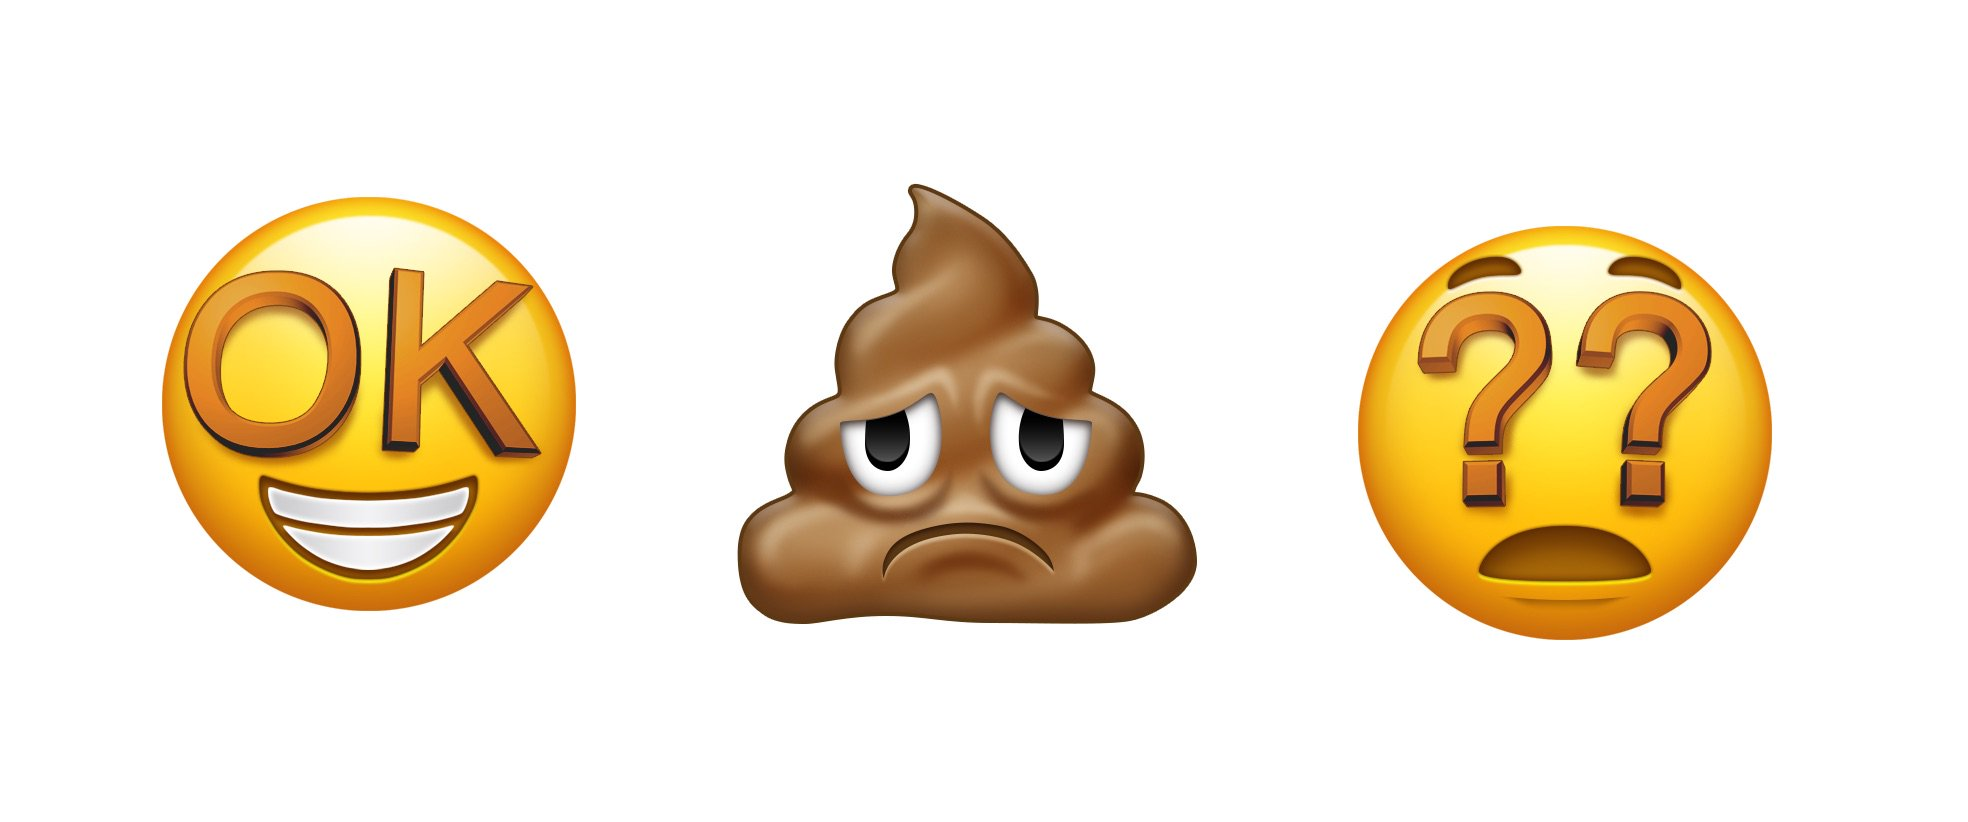 ok-frowning-poo-question-mark-emojipedia-1